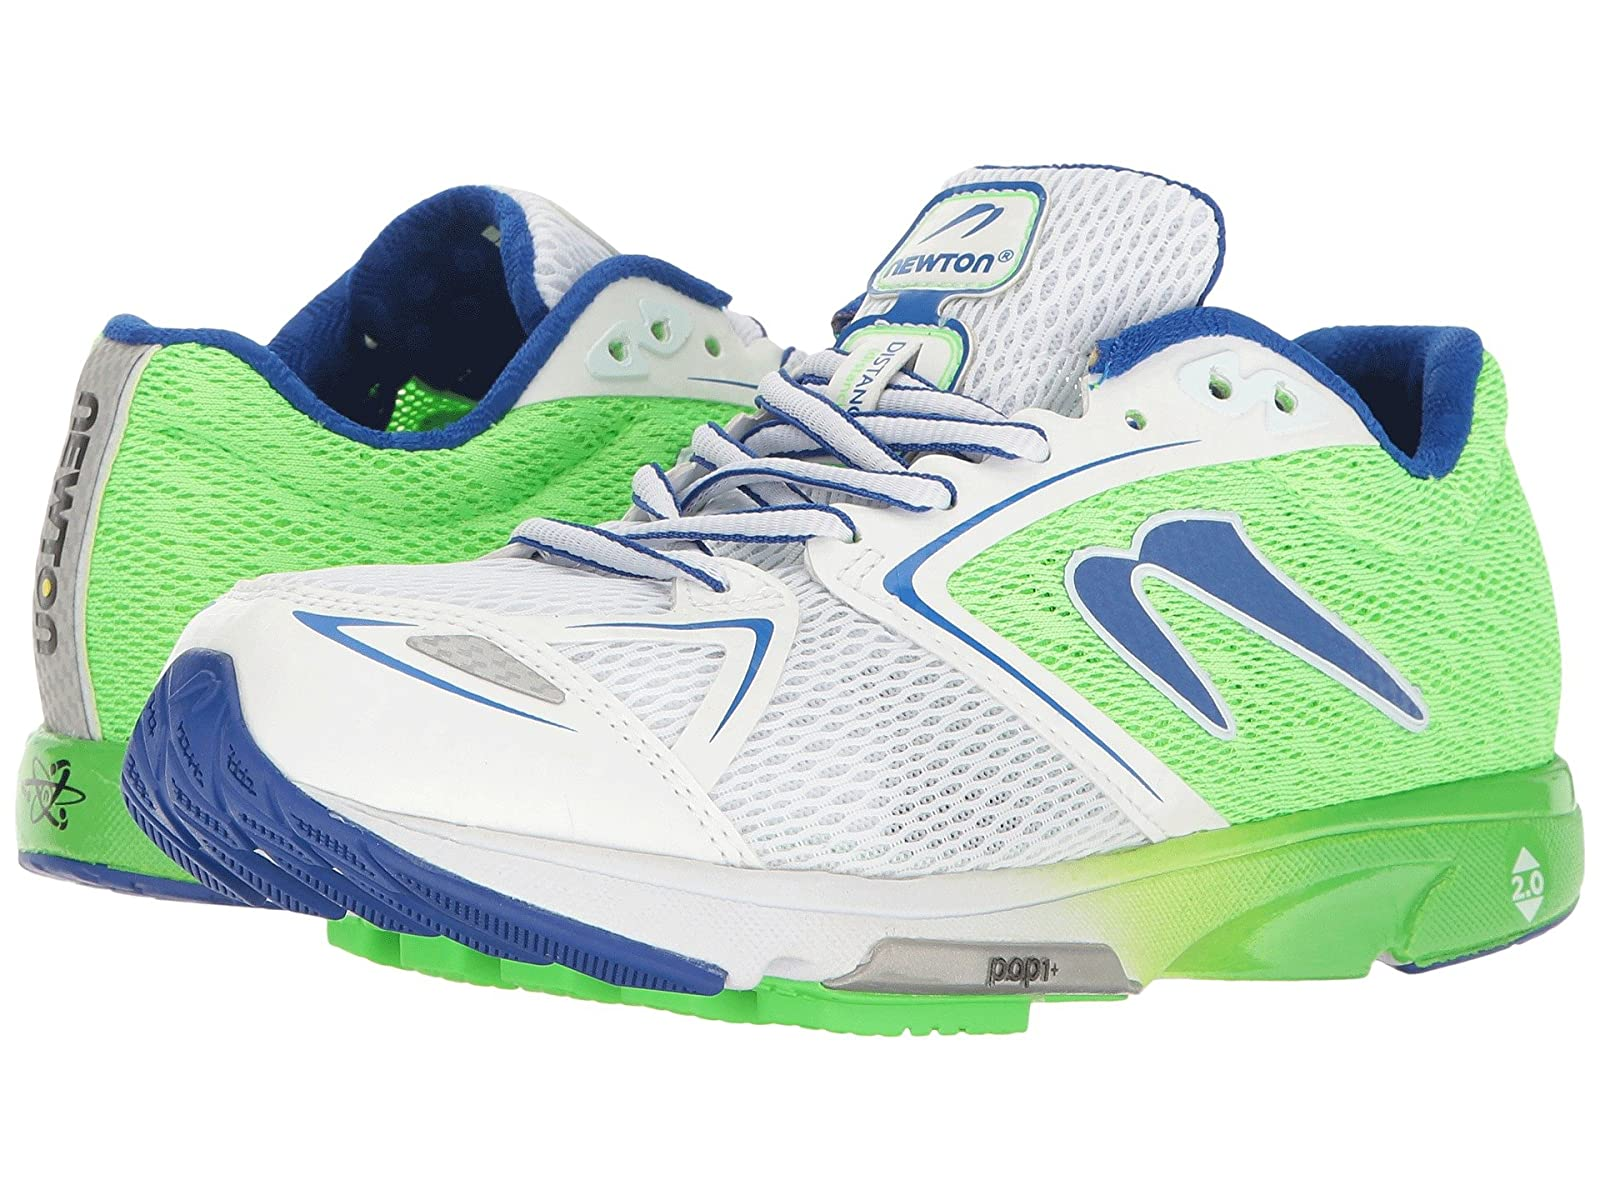 Men's/Women's:Newton Men's/Women's:Newton Men's/Women's:Newton Running Distance VI:Preferred Boutique f75556